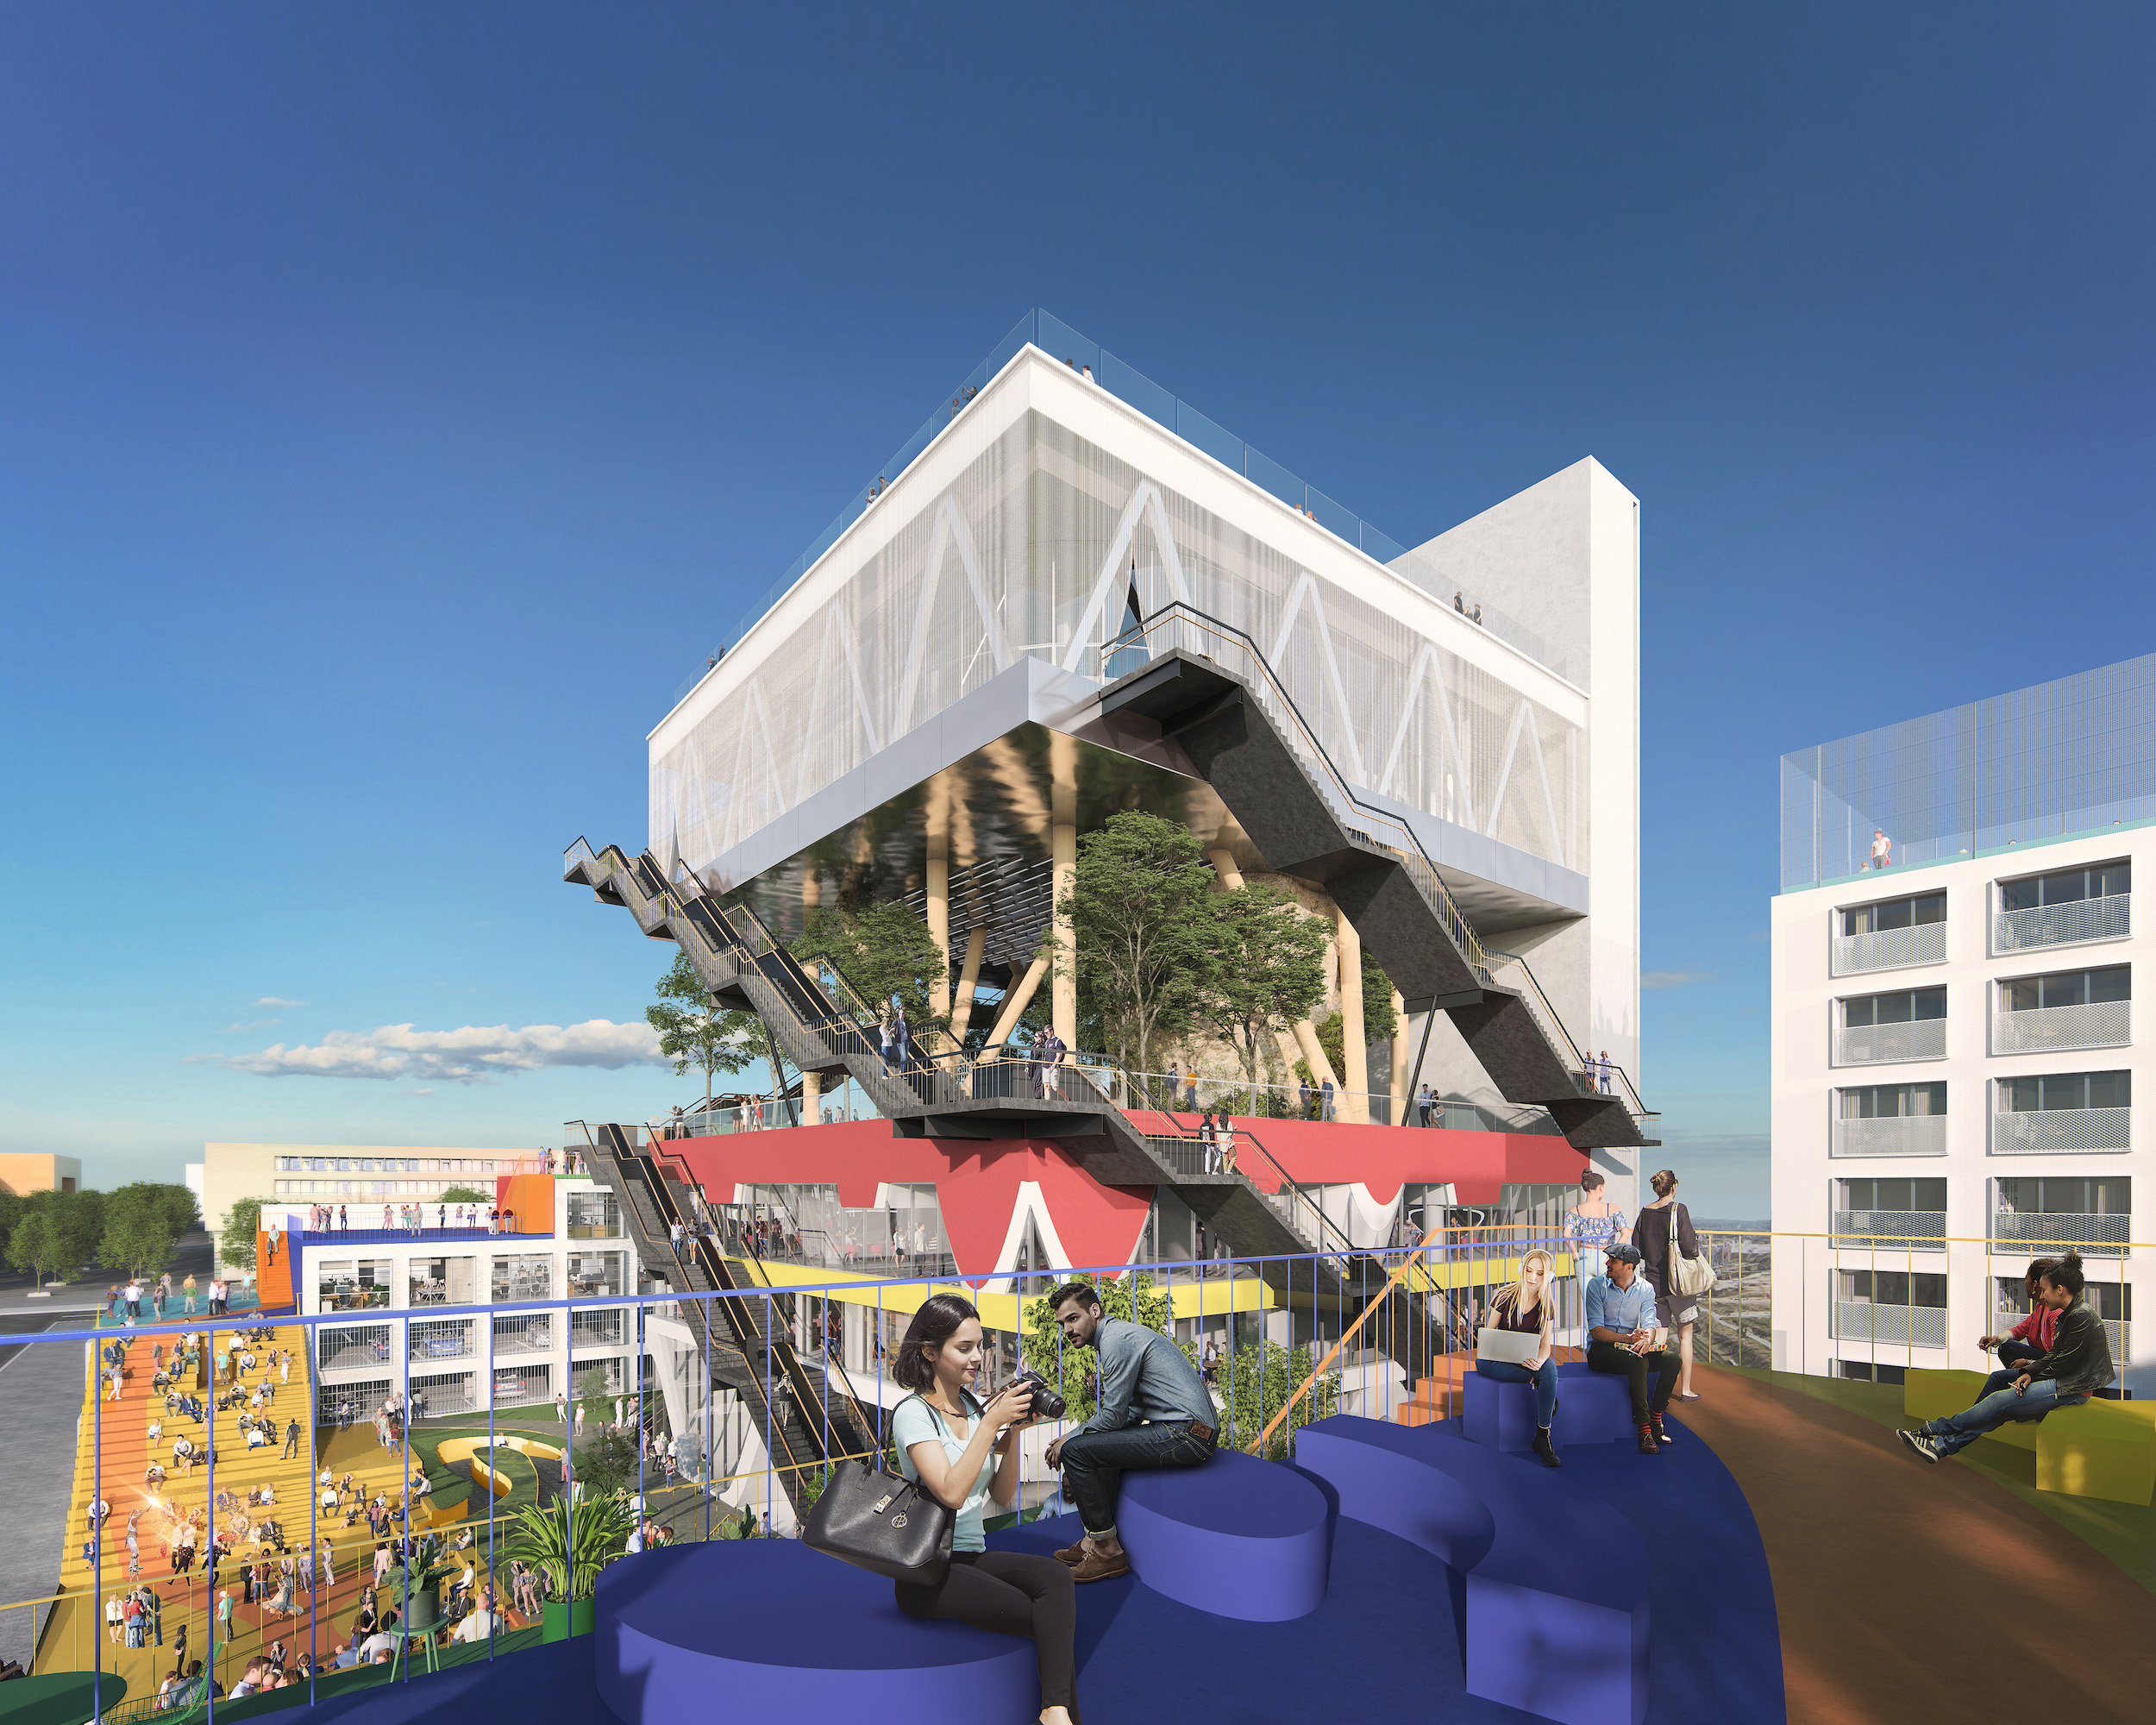 image of expo-pavilion-turned-coworking-space by mvrdv in Hanover